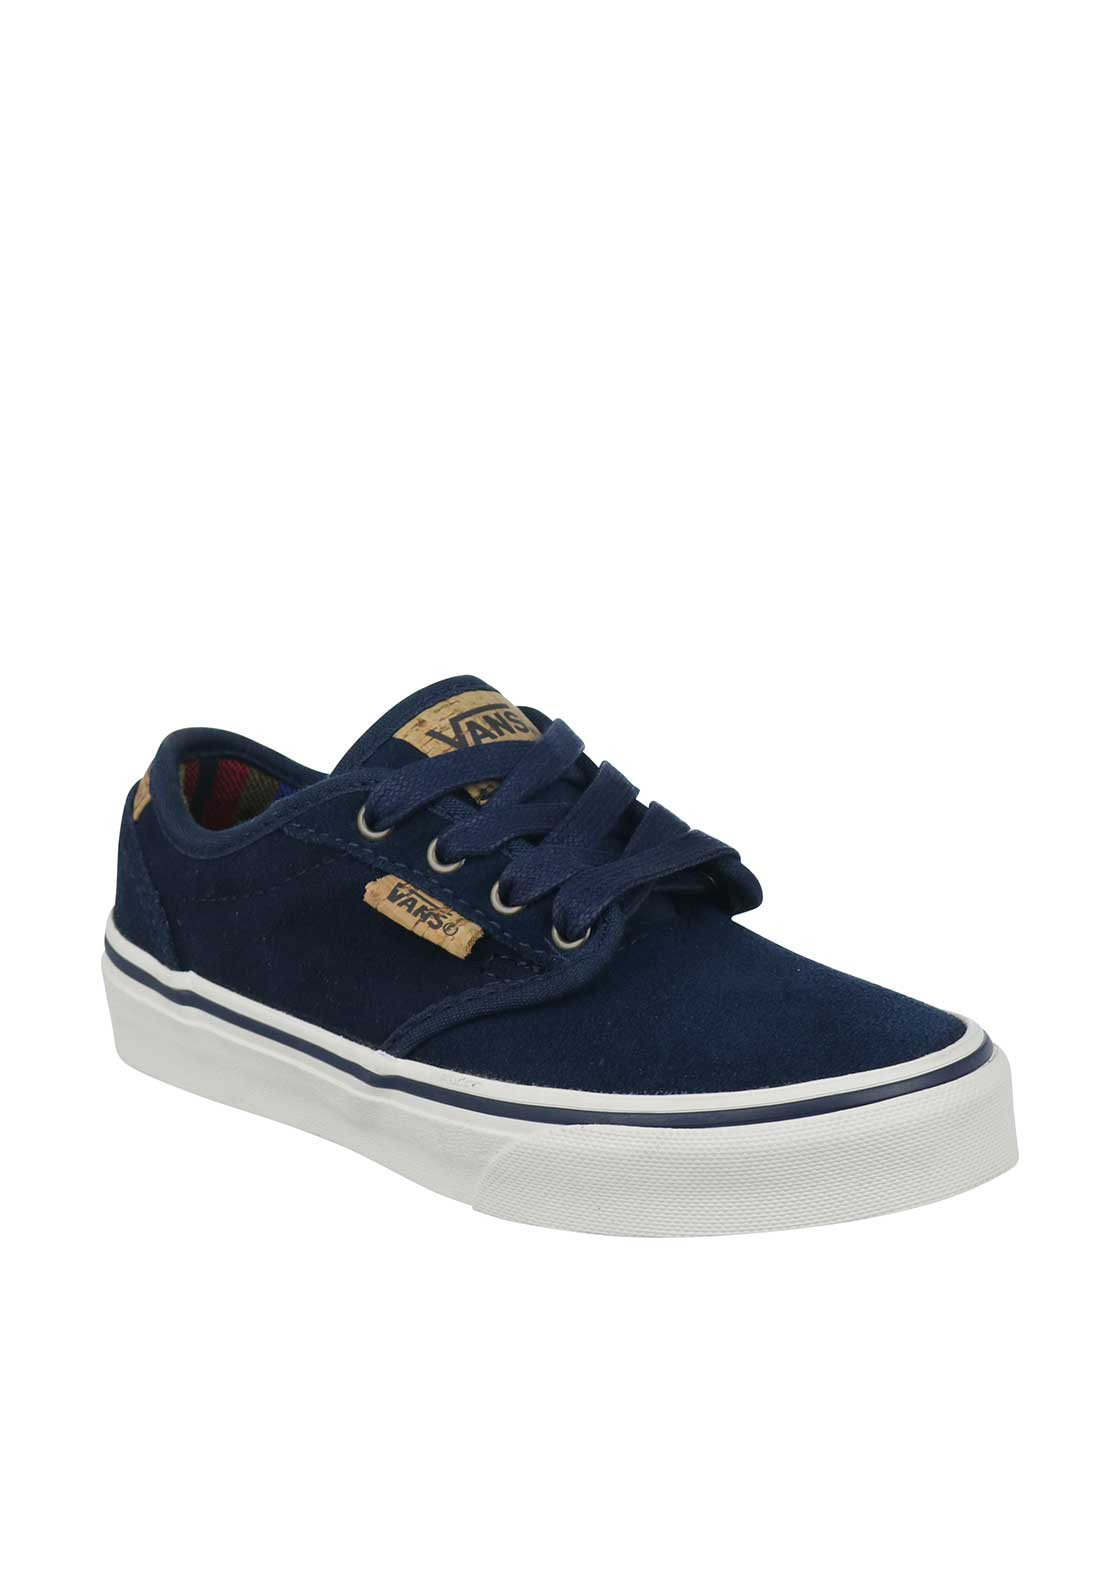 Vans Boys Suede Trainers, Navy